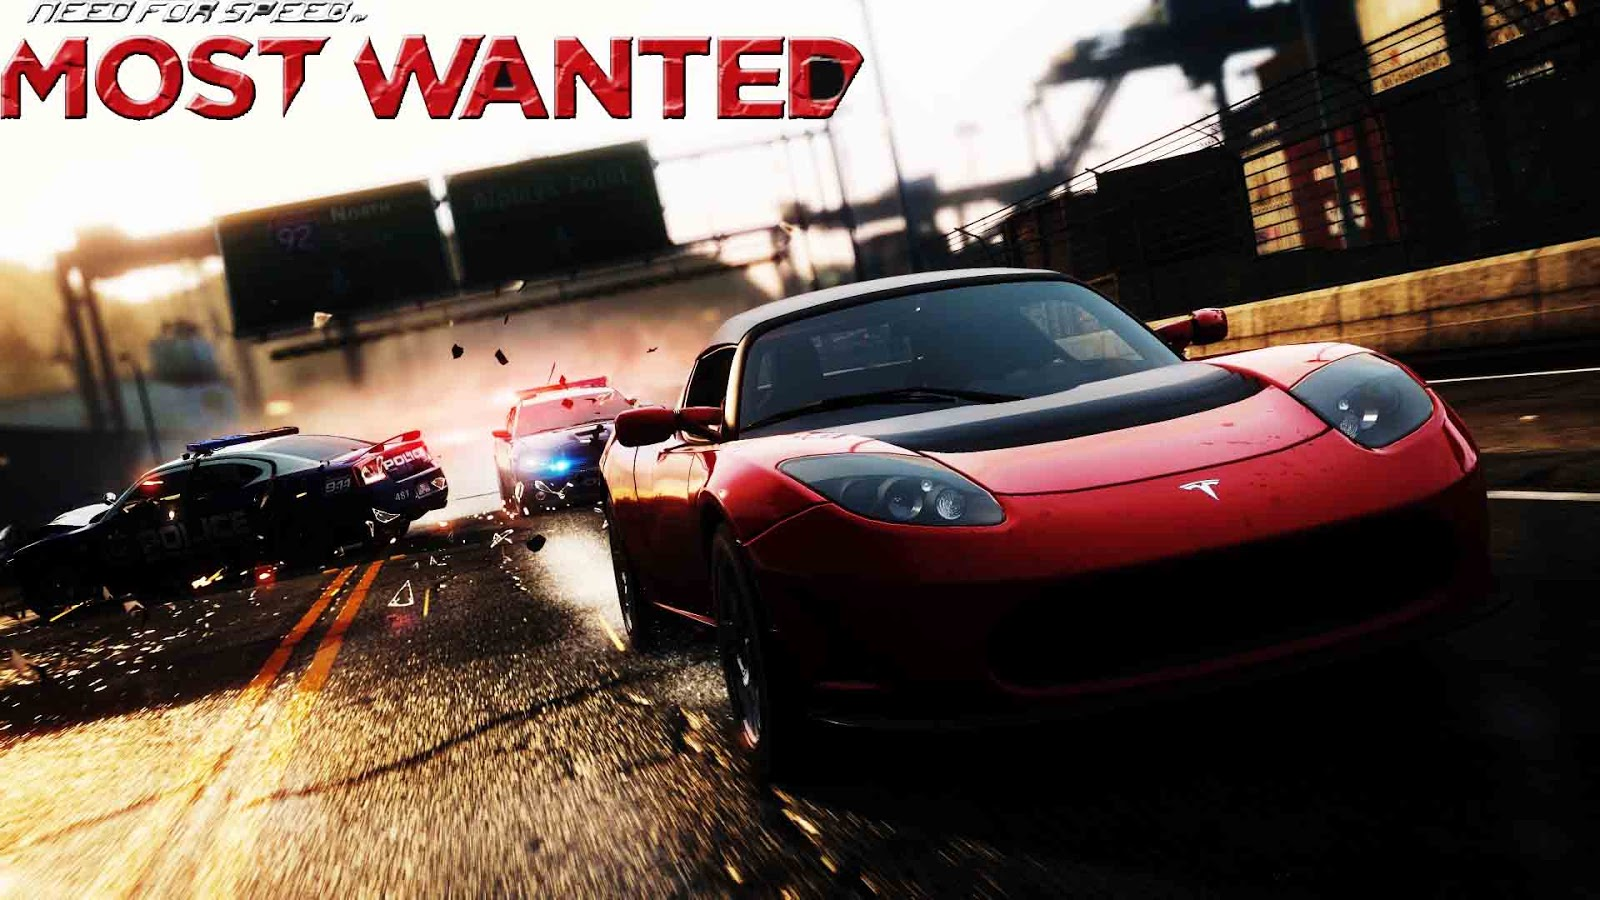 Nfs most wanted crack file | Need for Speed Most Wanted 2 Crack www